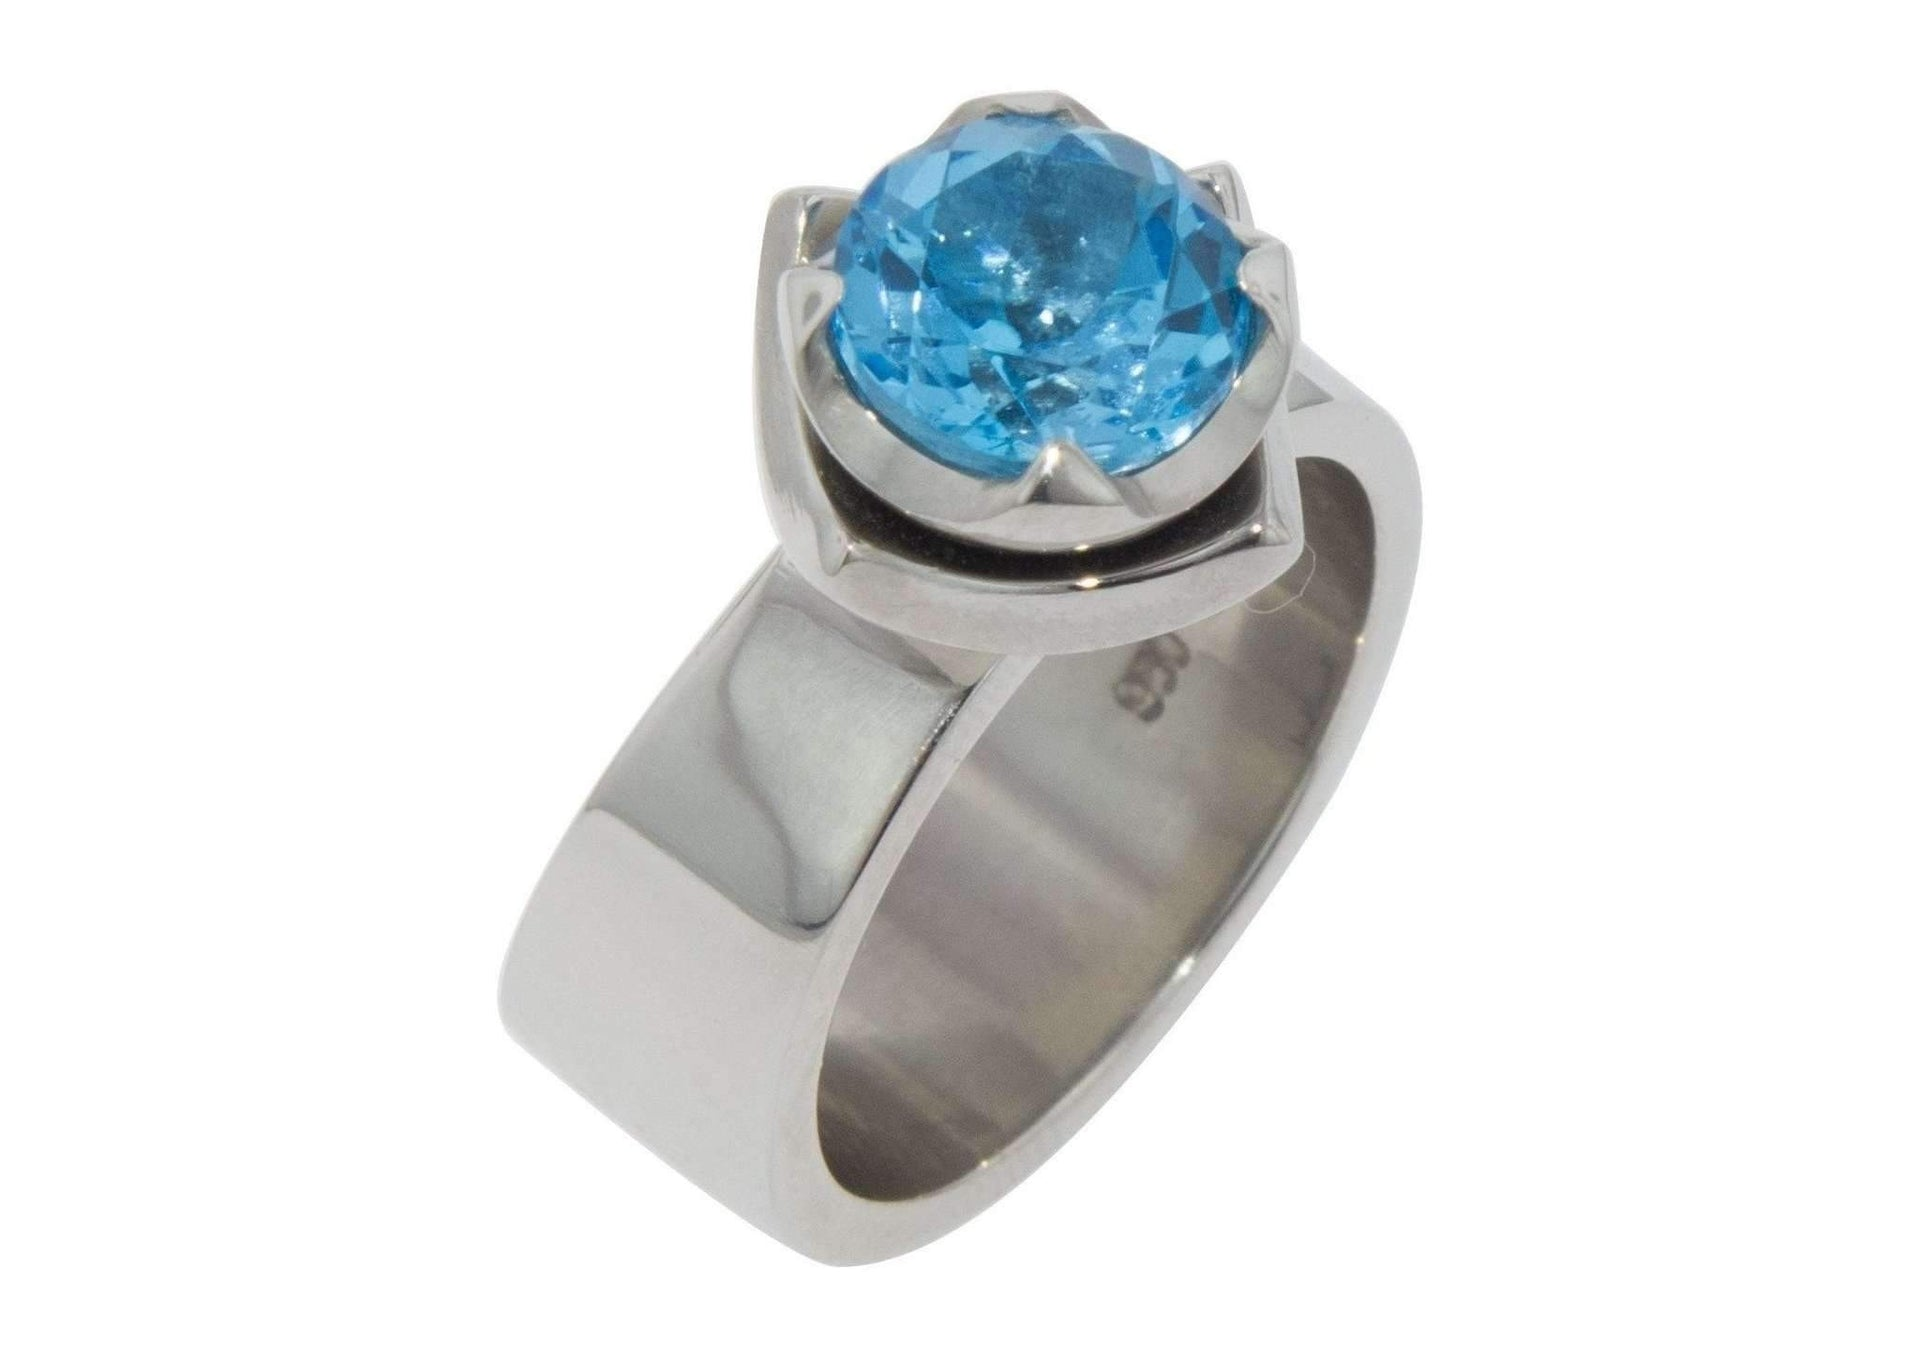 Palladium Blue Topaz Flower Ring design   - Jens Hansen